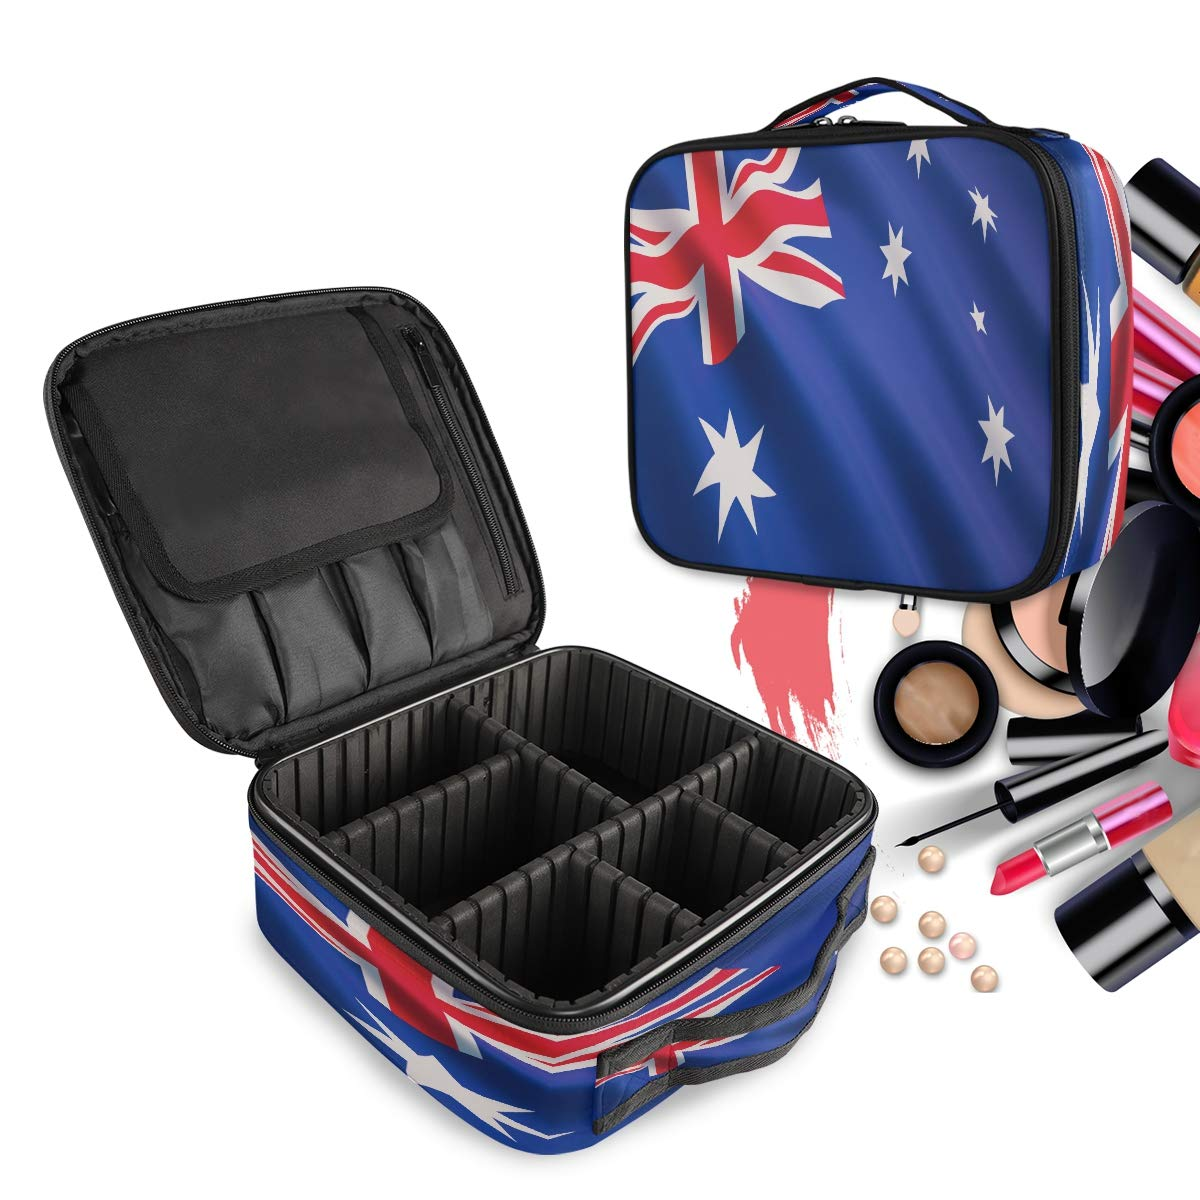 Travel Makeup Case Flag Of Australia Cosmetic Bag Box Professional Train Case Large Make Up Storage Organizer with Removable Dividers & Brush Section for Women Girls Hard Shell